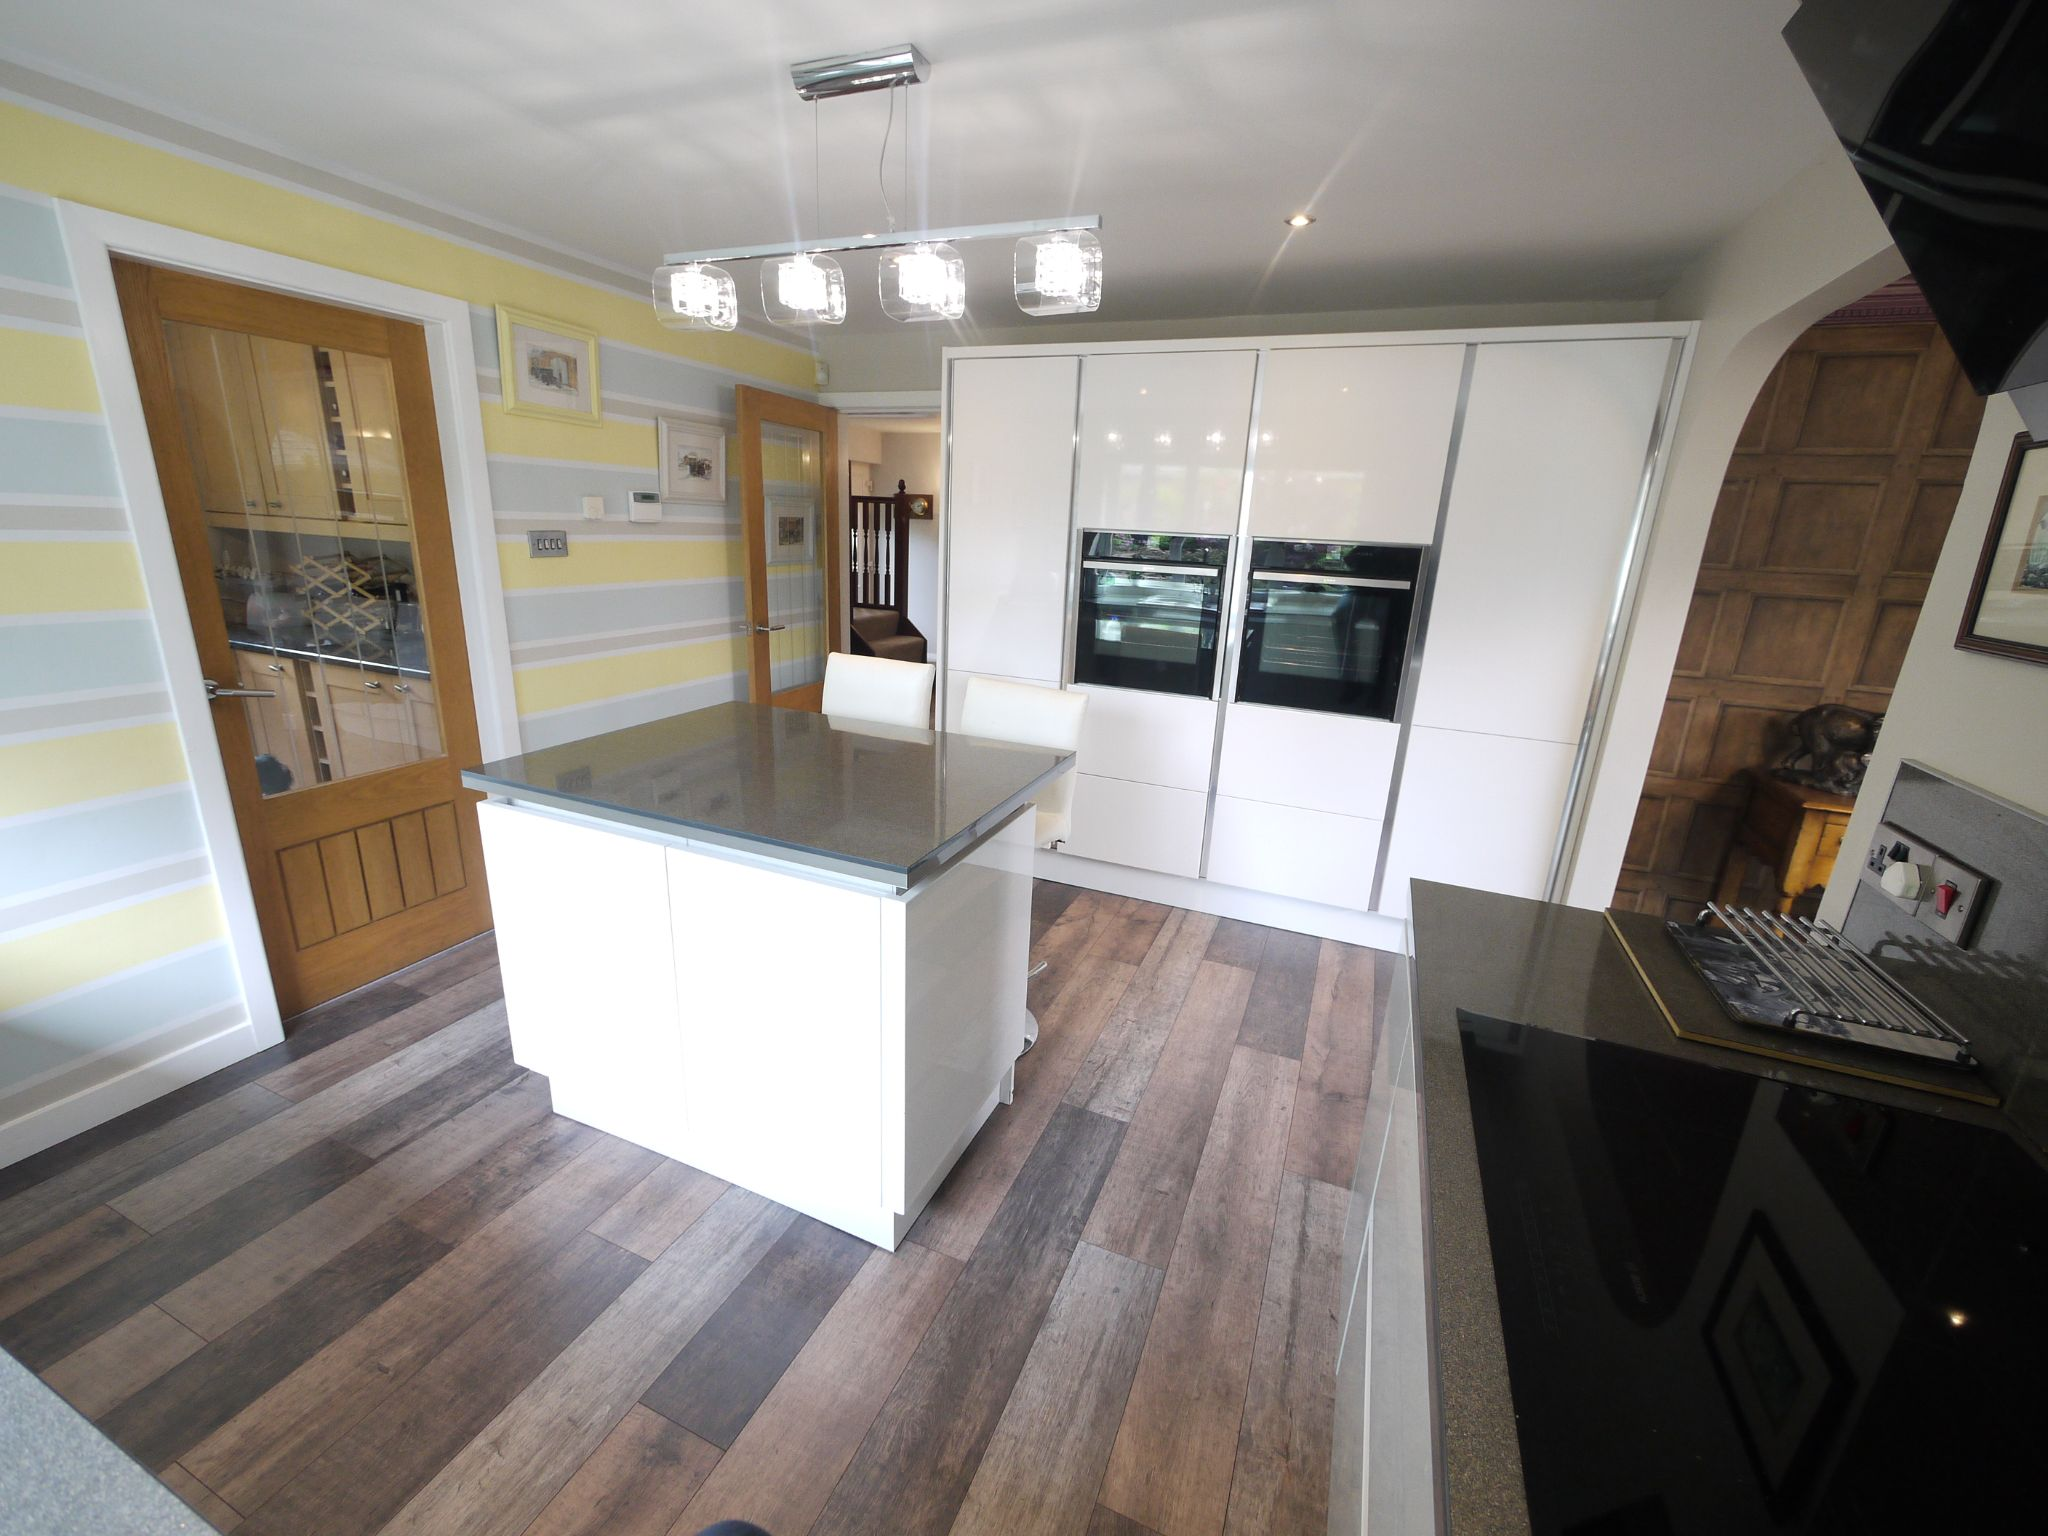 4 bedroom detached house For Sale in Brighouse - Kitchen 2.